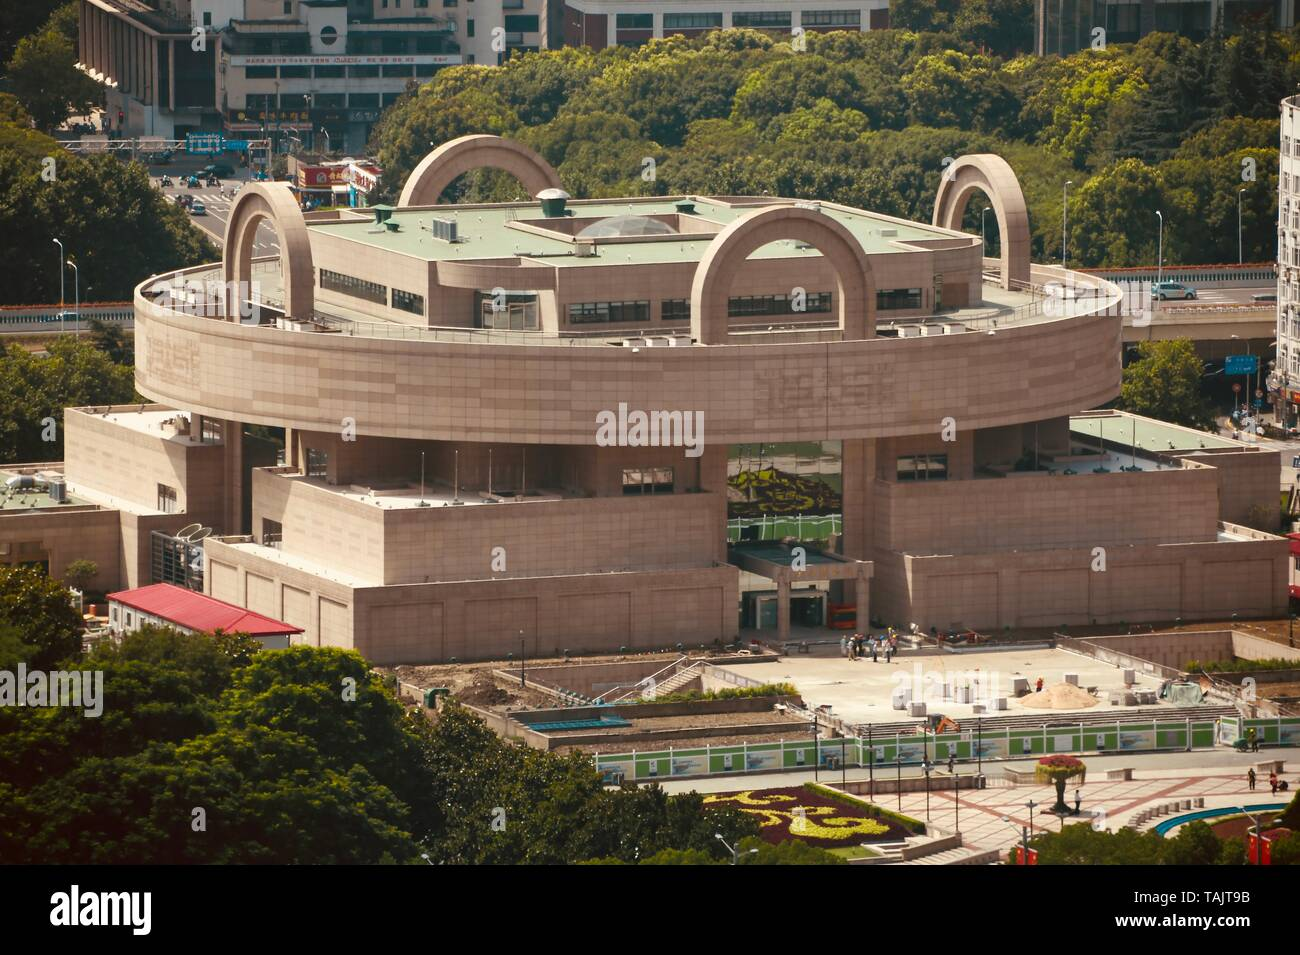 Shanghai Museum - one of the most fascinating museums in the world - Stock Image